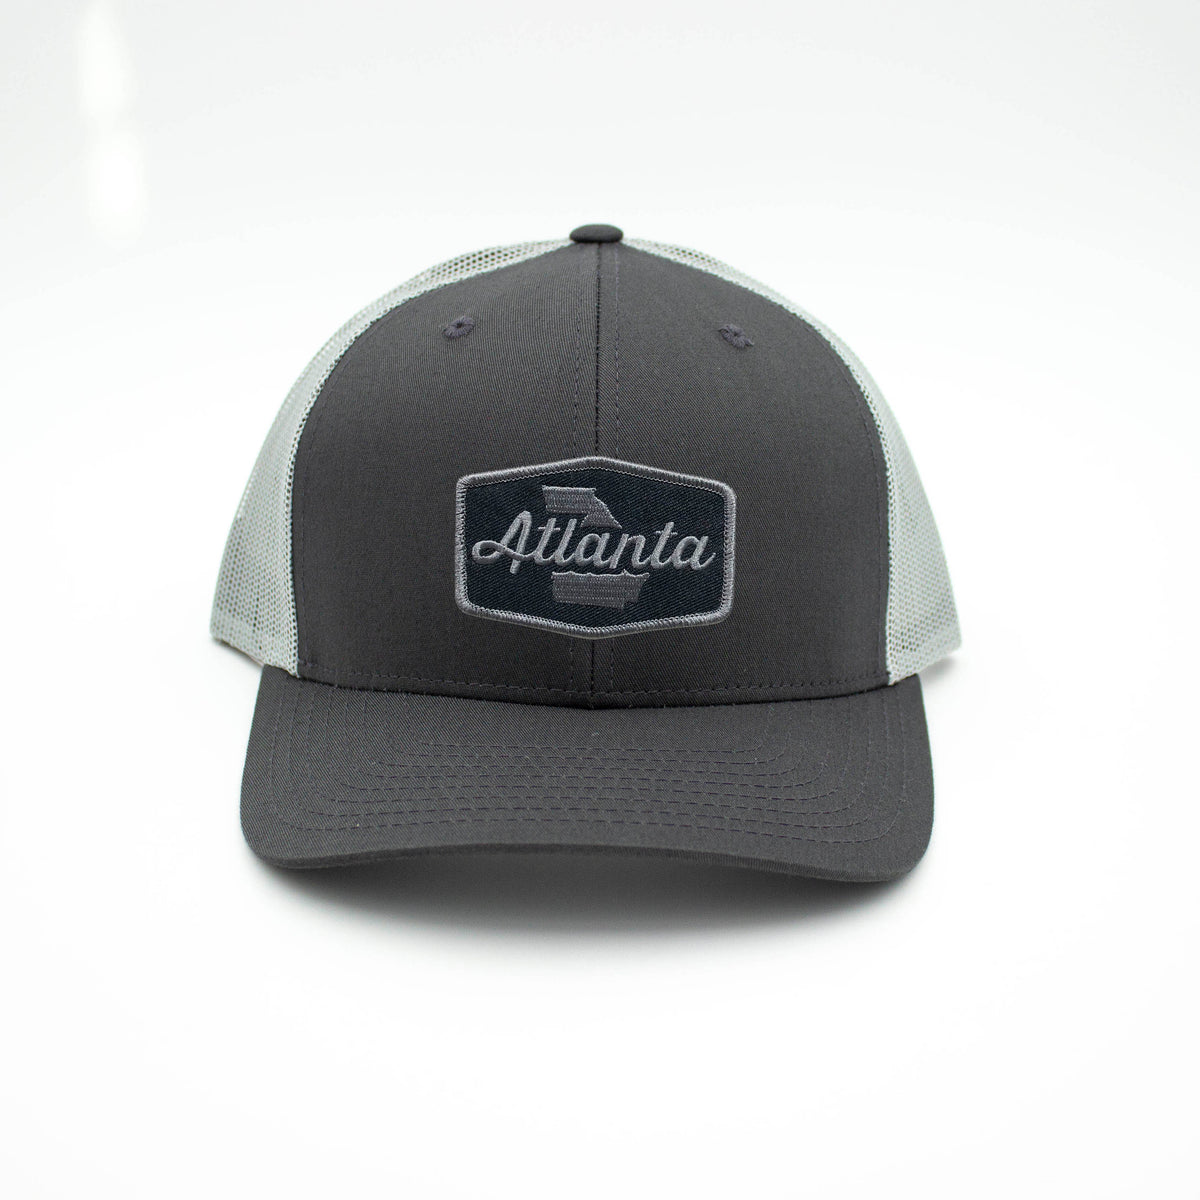 ATLANTA PATCH TRUCKER HAT - CHARCOAL/GRAY